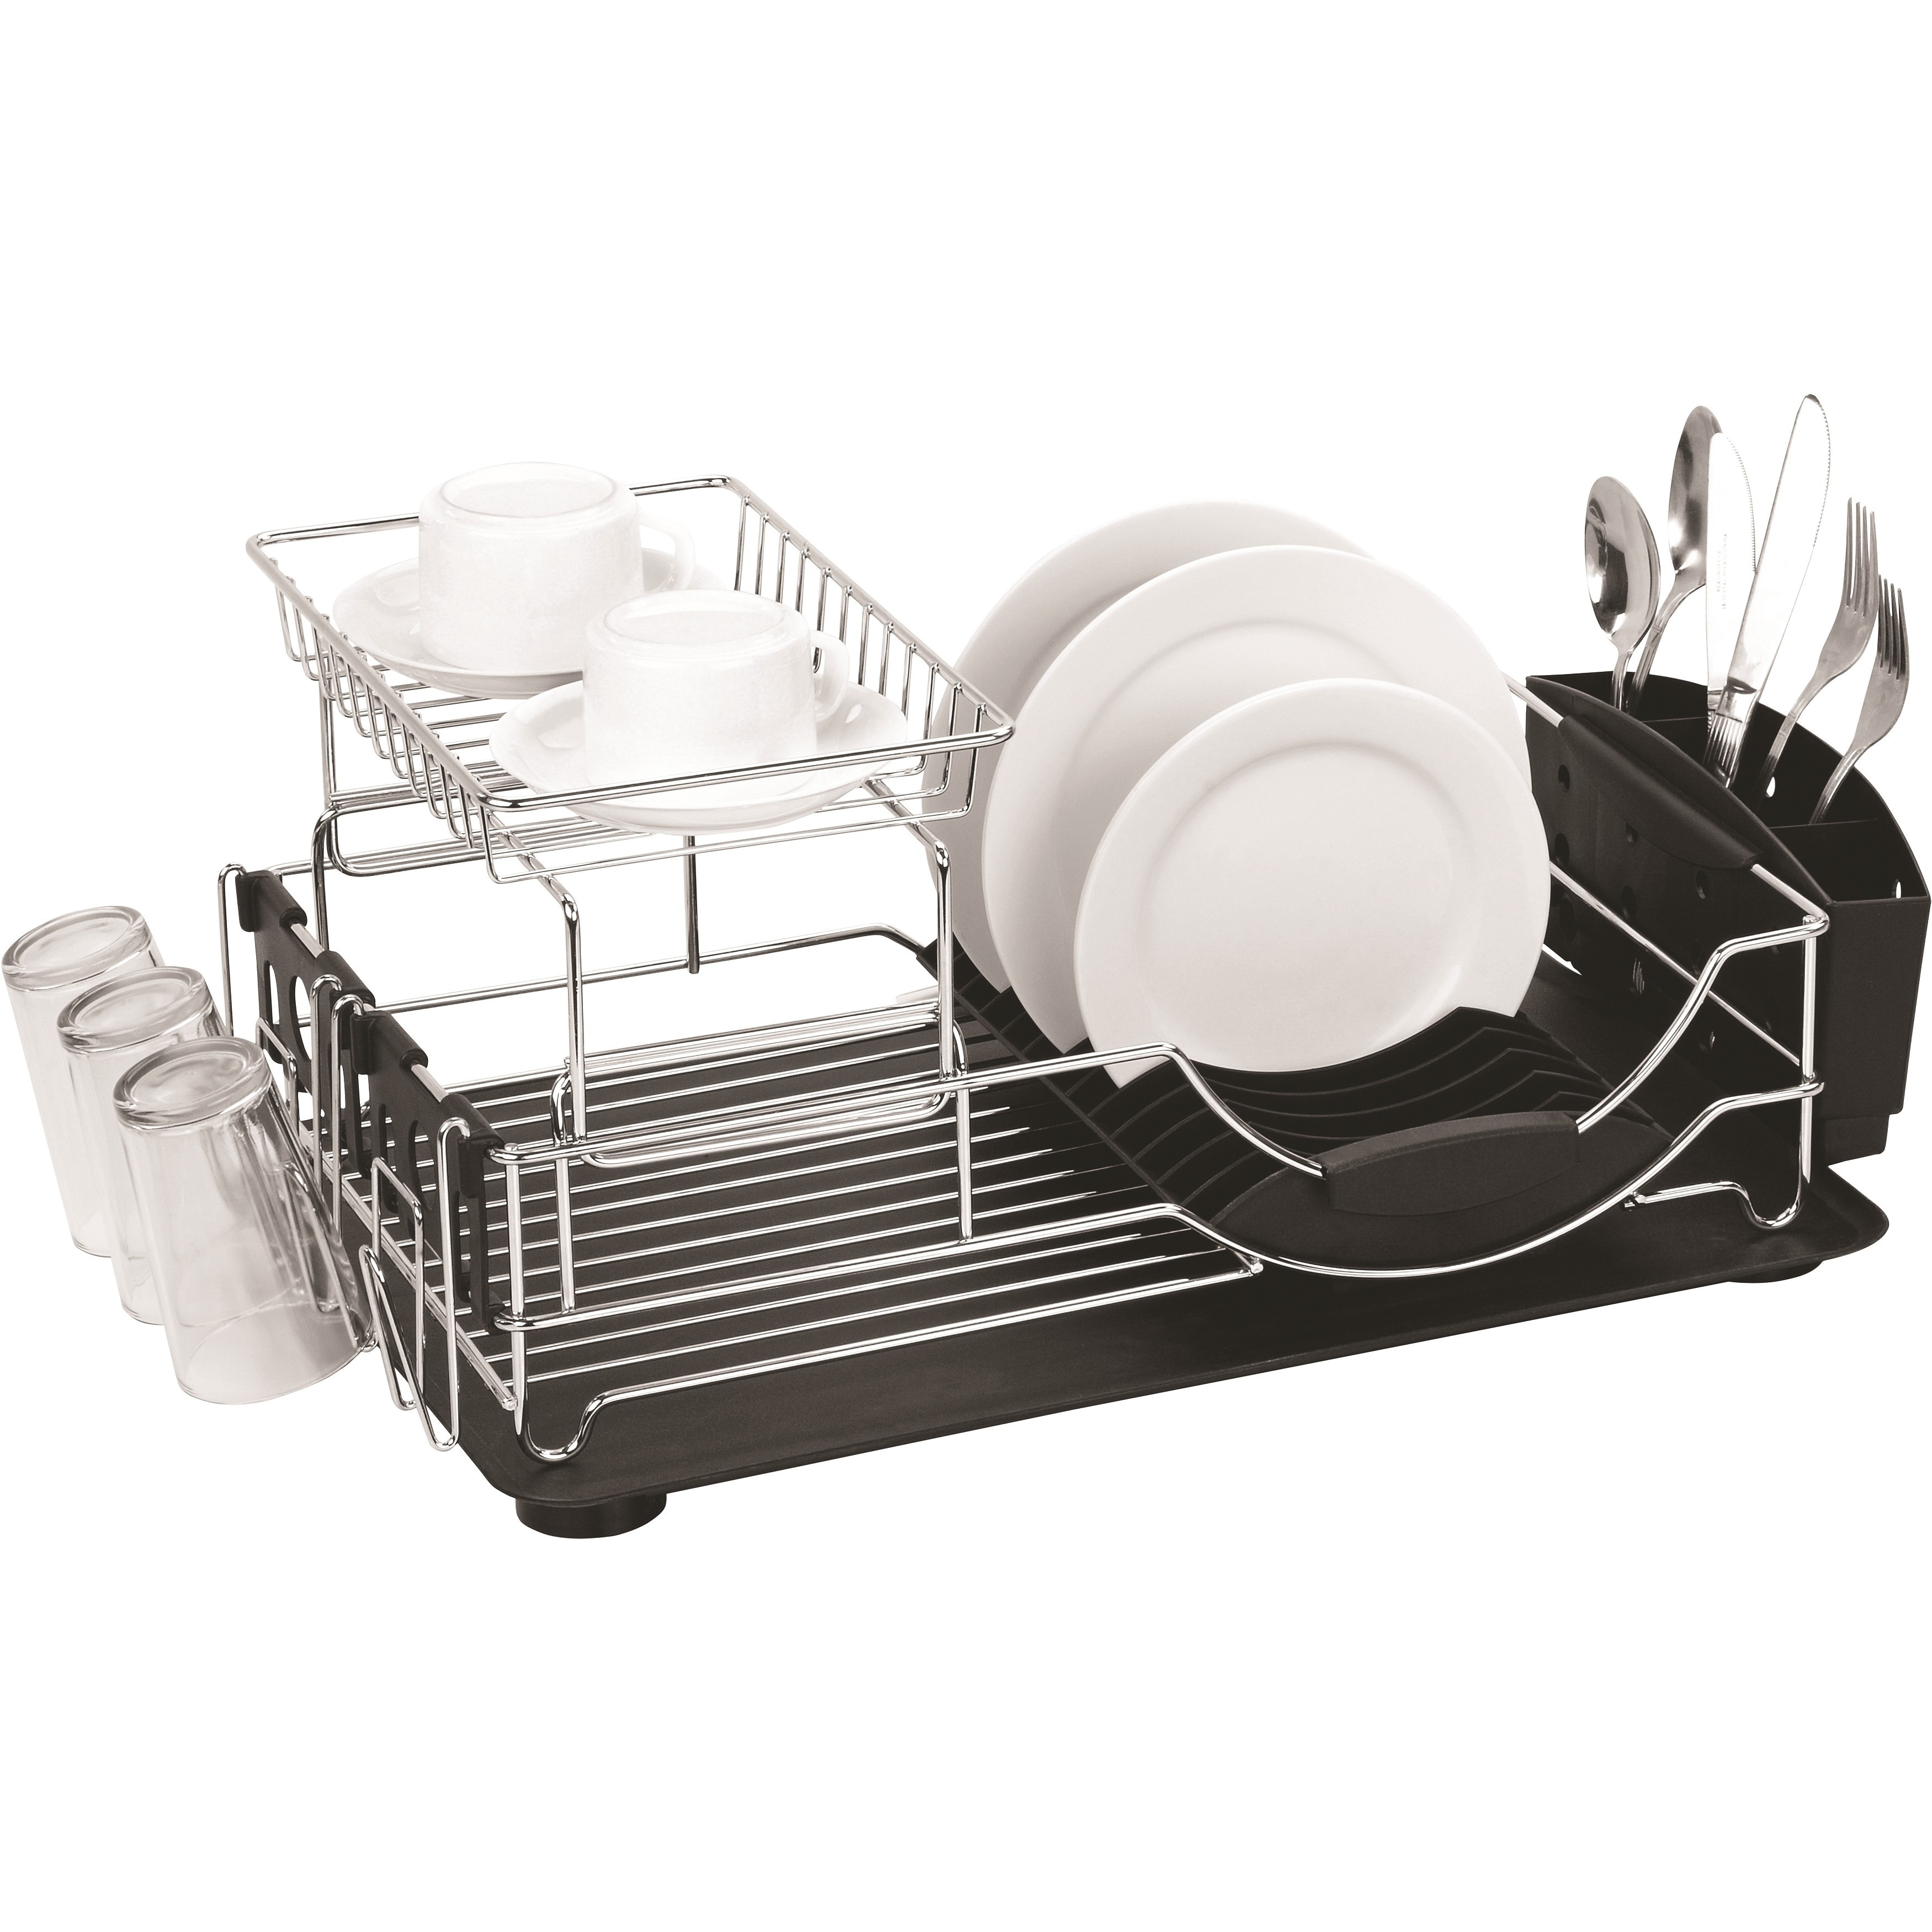 Shop Home Basics Chrome Plated Steel 2 Tier Deluxe Dish Drainer